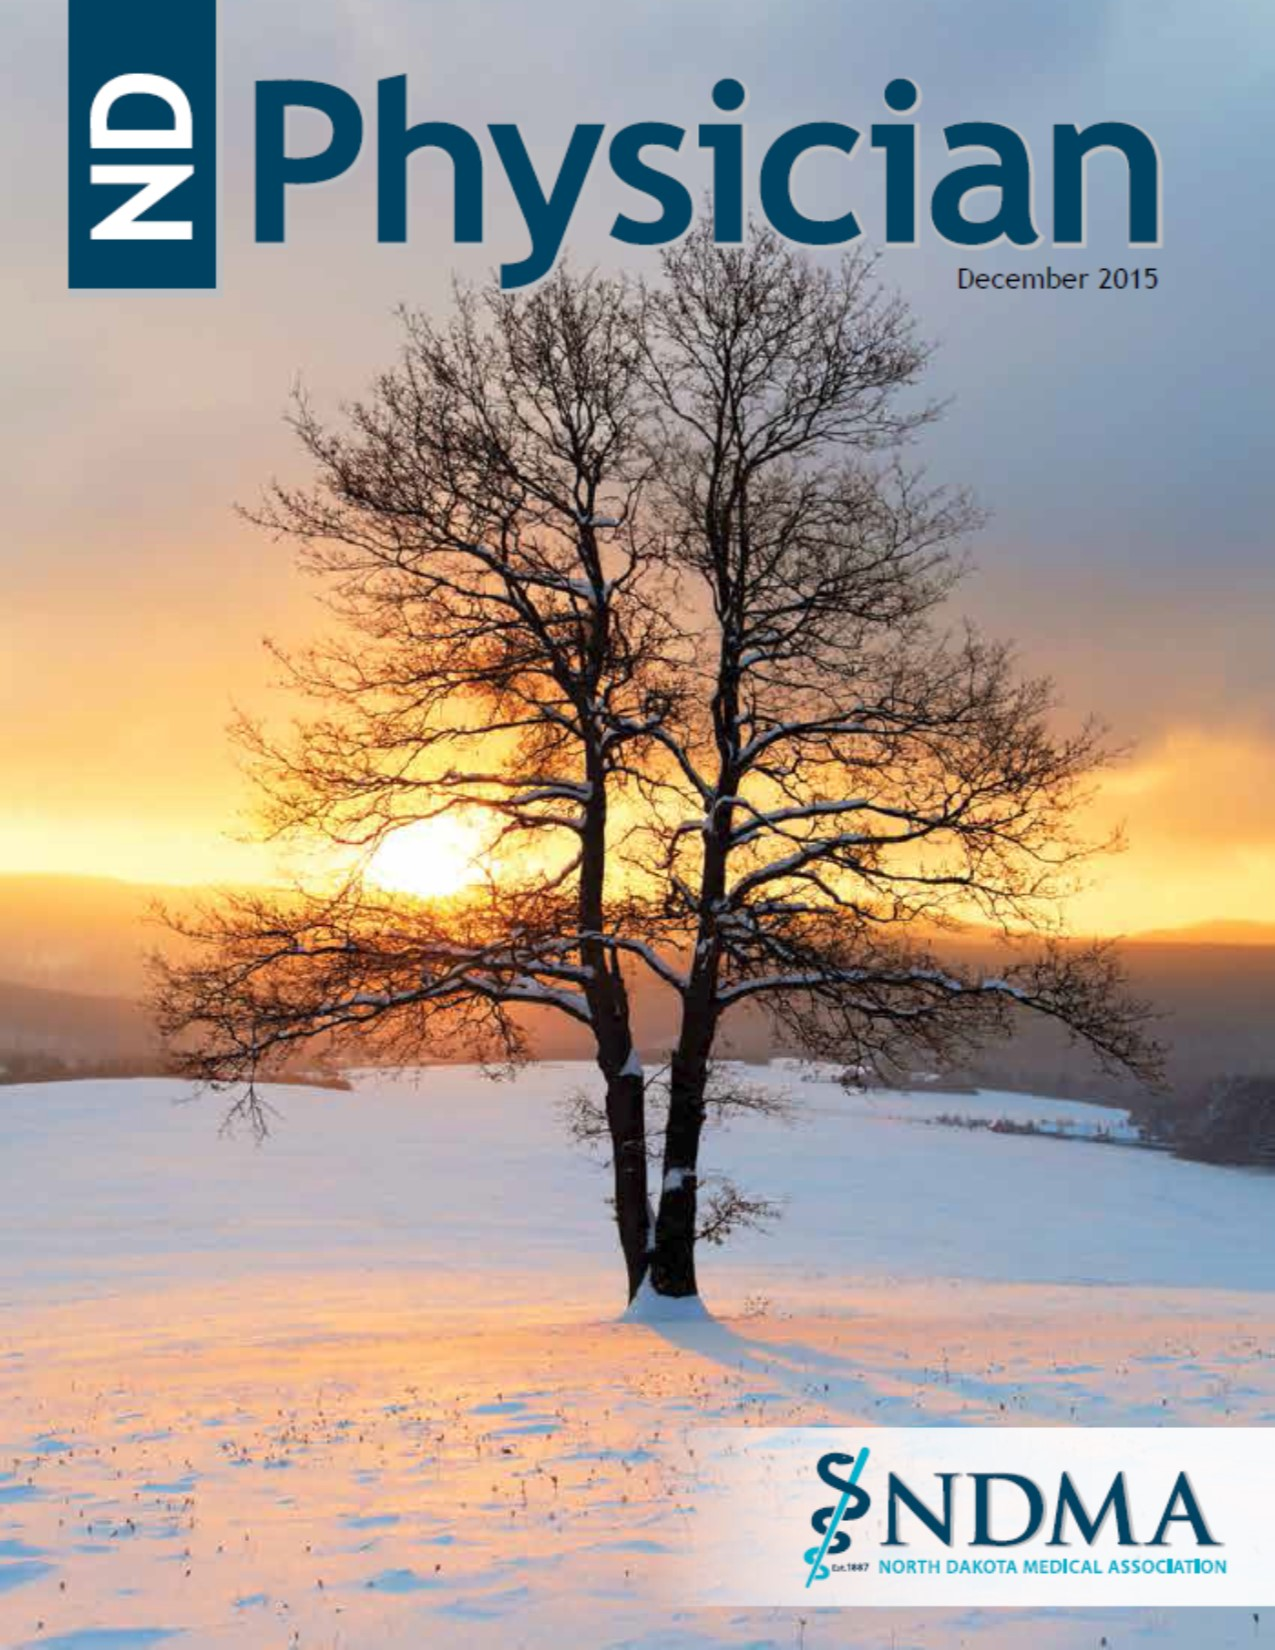 ND Physician December 2015 magazine cover